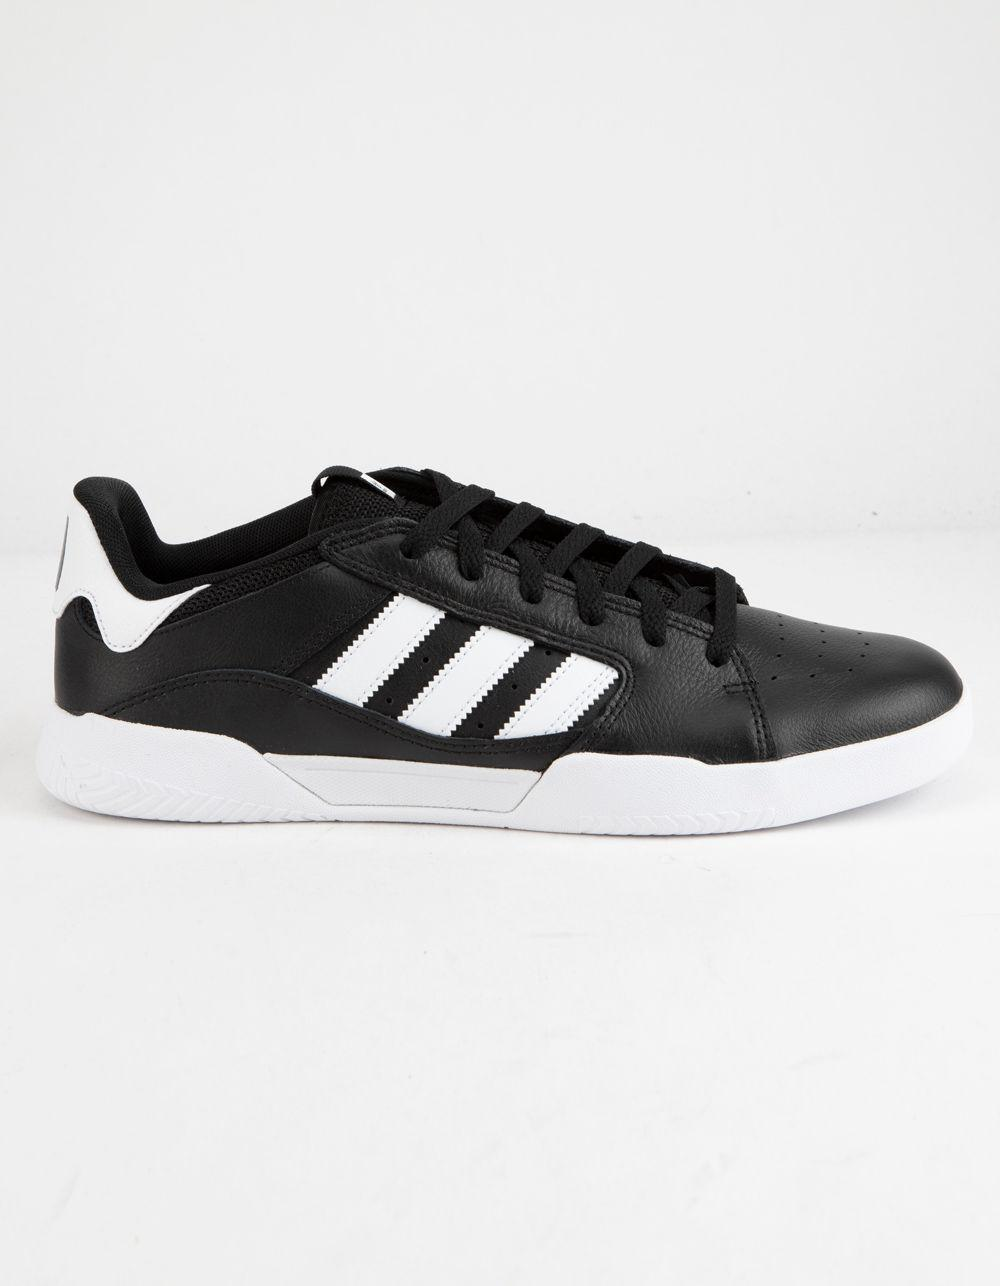 4f26e16326d7 Lyst - adidas Vrx Cup Low Mens Shoes in Black for Men